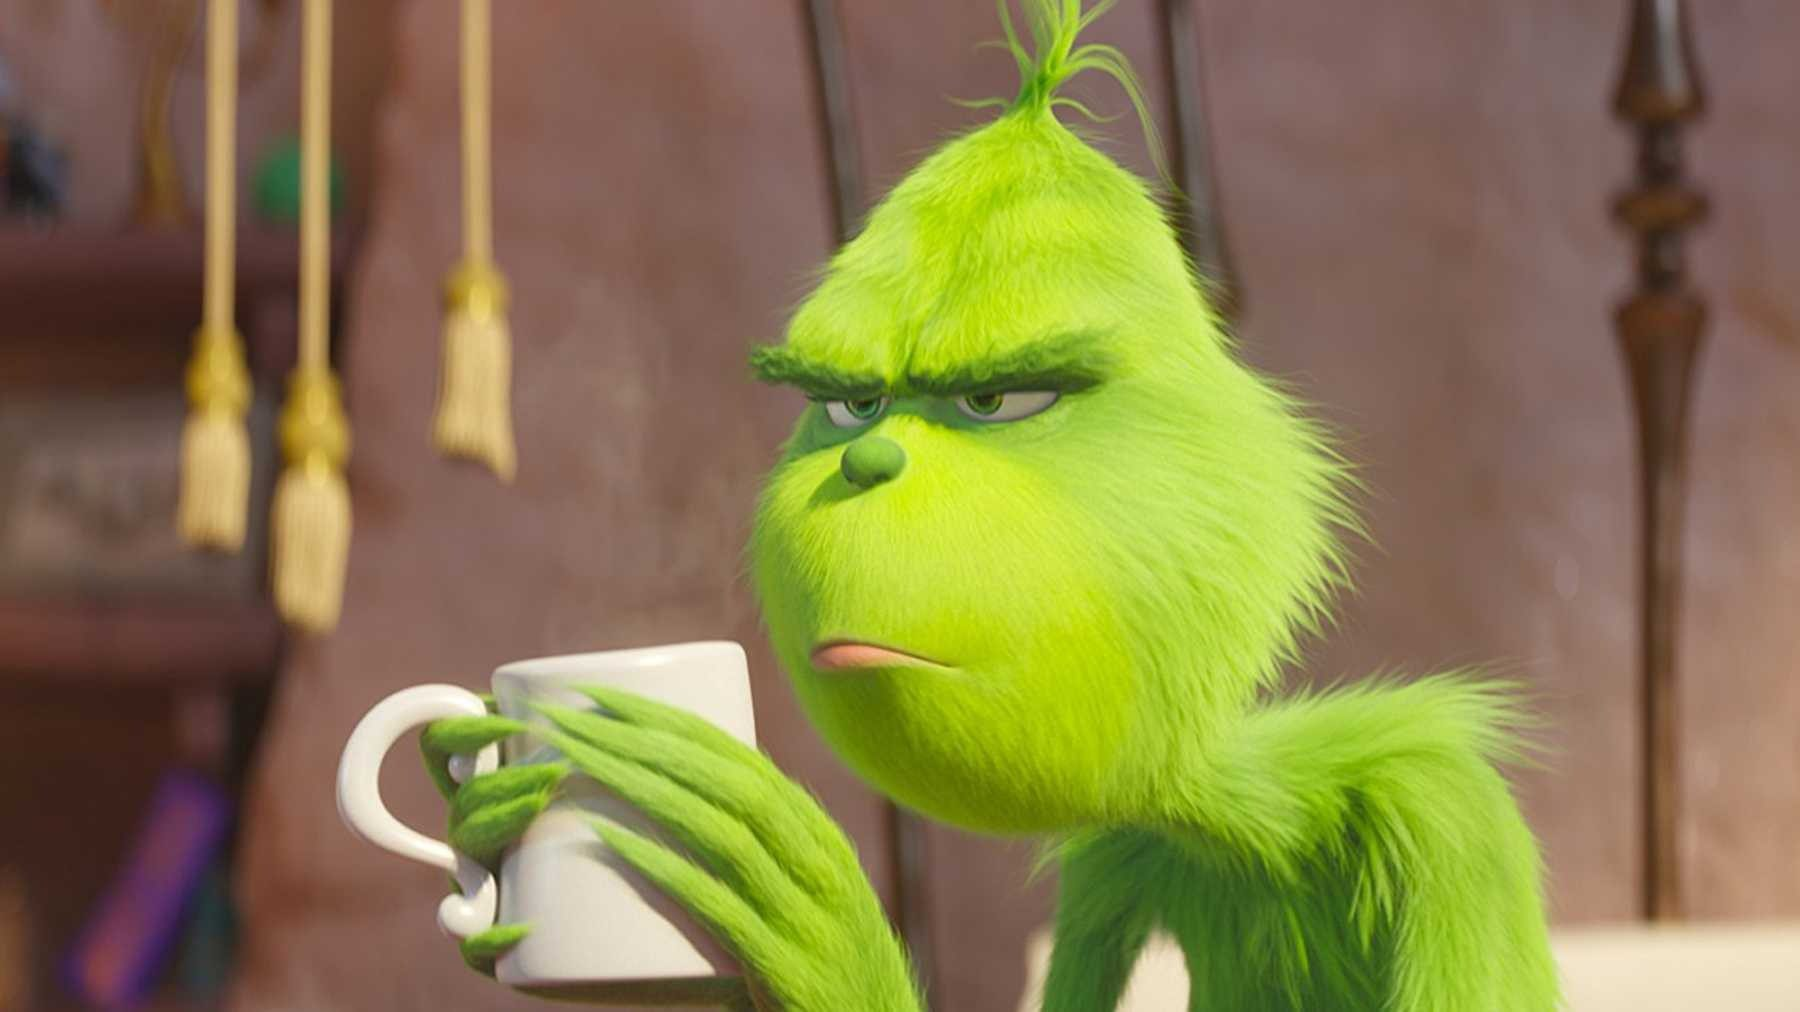 The Grinch (2018) holding coffee mug